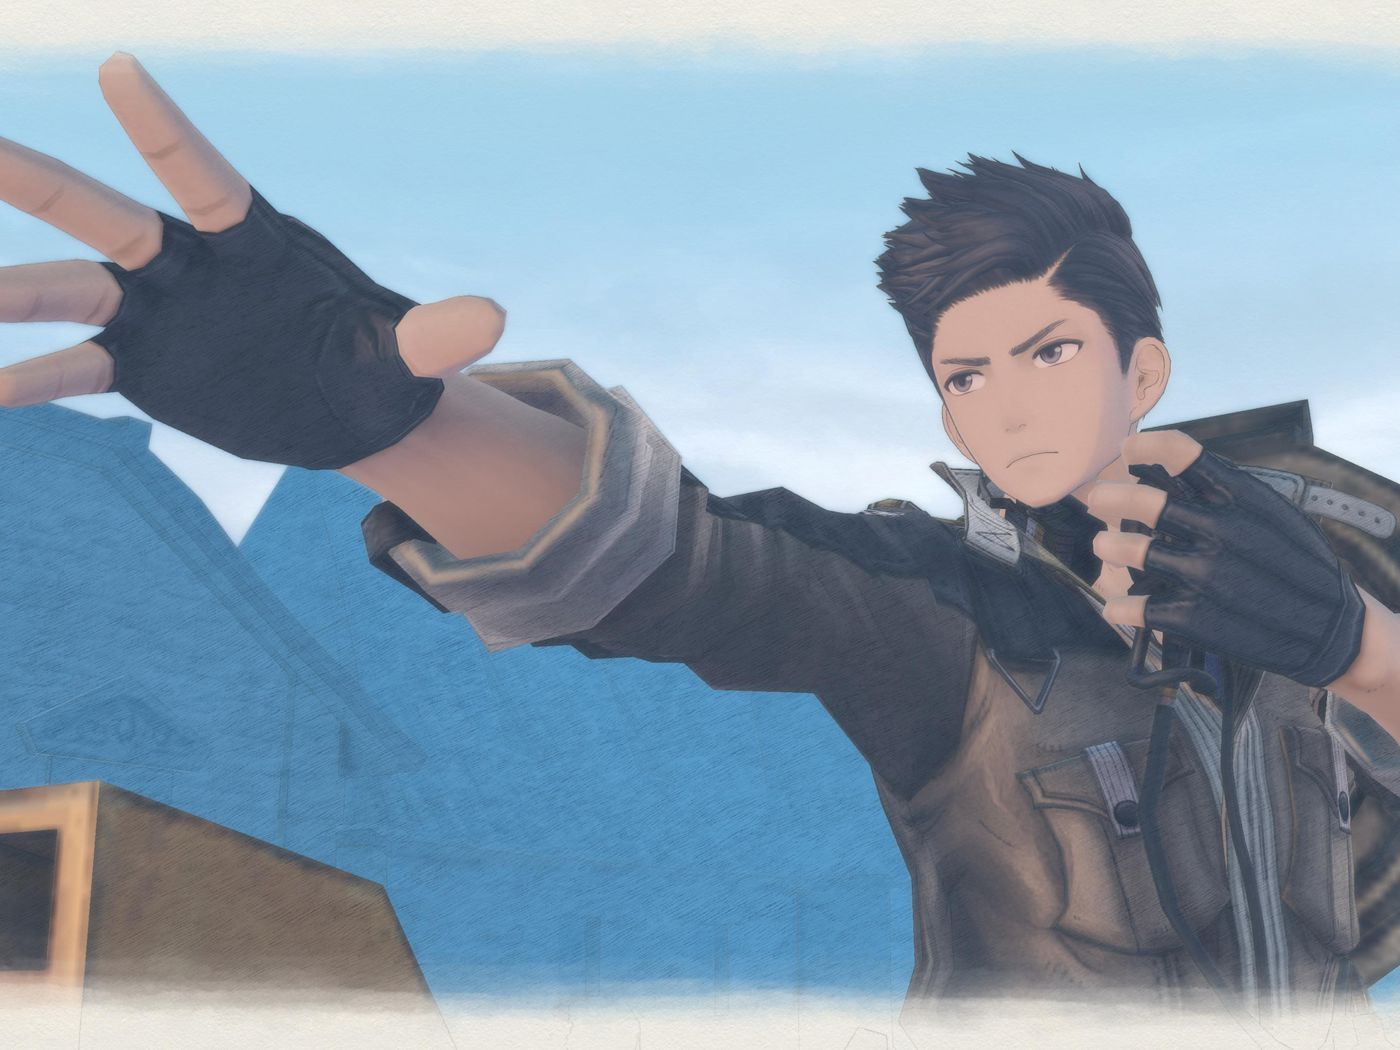 Valkyria Chronicles 4 isn't for me, but it taught me what is